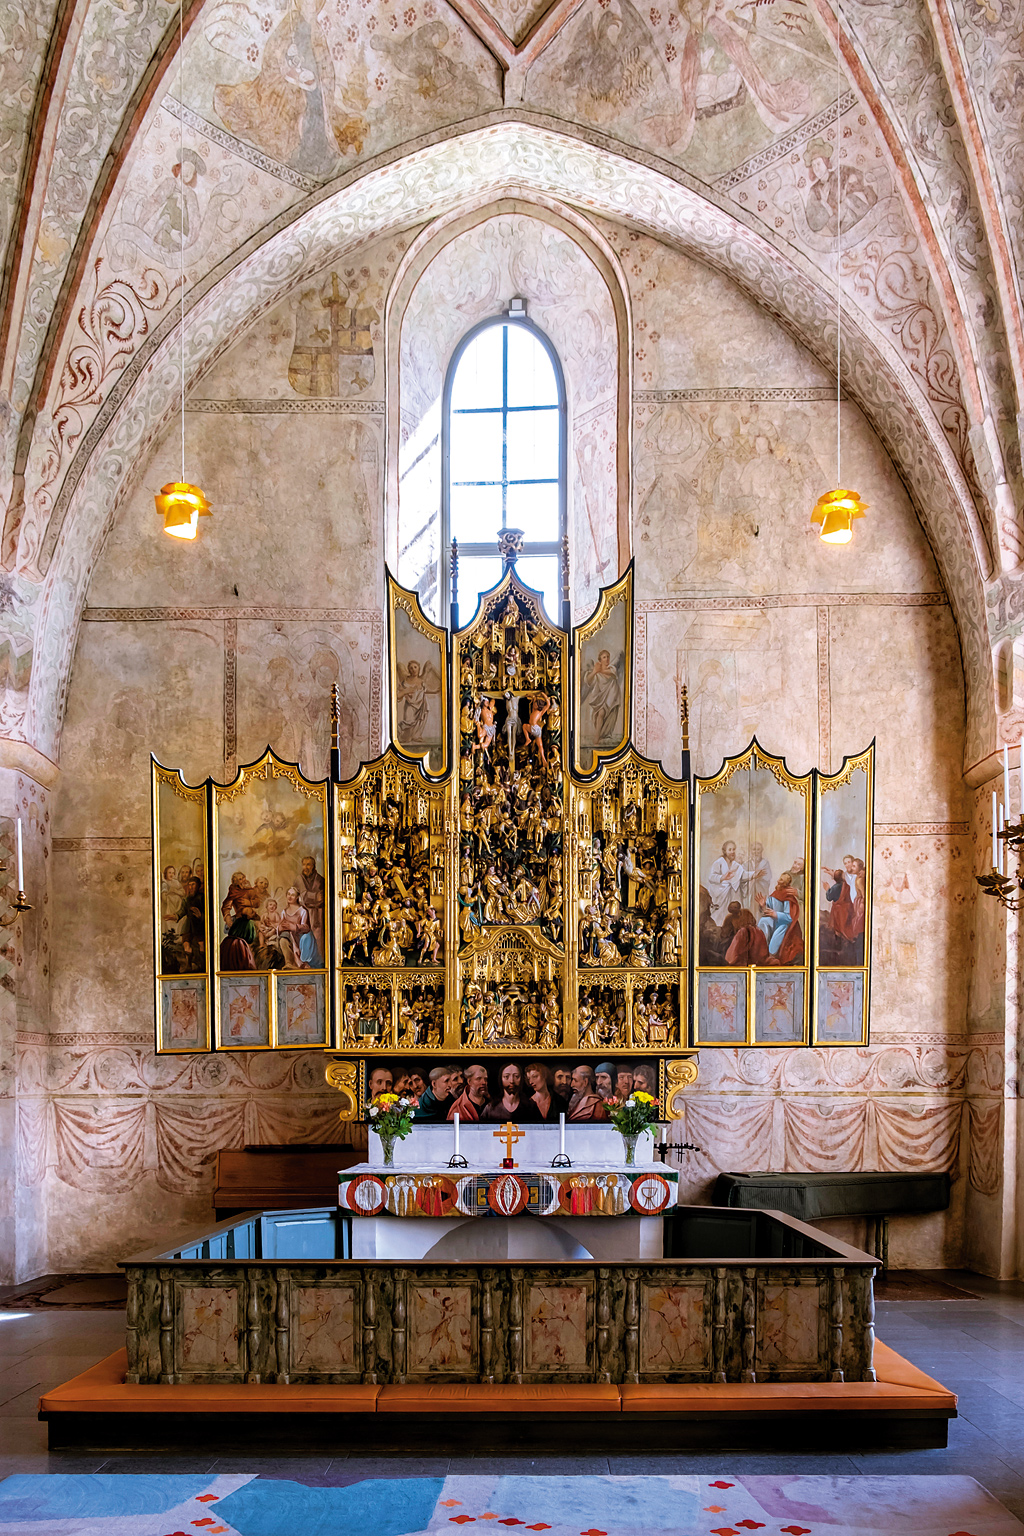 The Altar of Naderluleå Church, Gammelstad Church Town, Sweden. The church town has 424 wooden houses which were used to host worshippers on Sundays and during religious festivals.